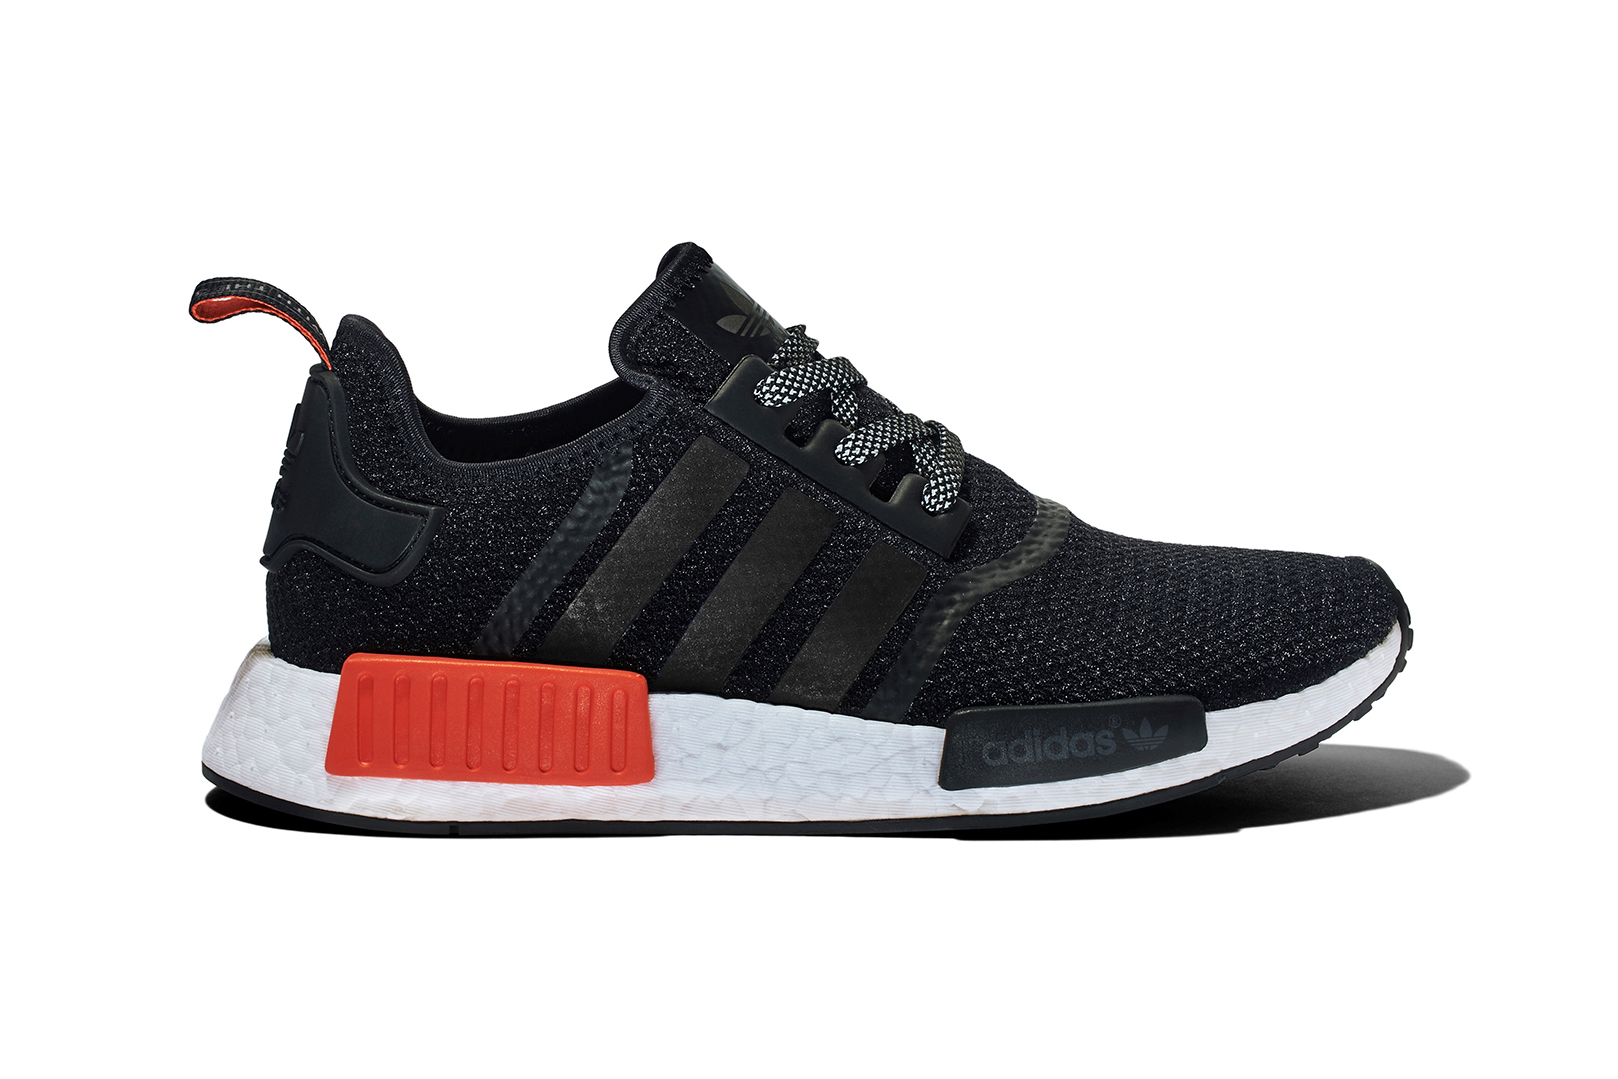 adidas NMD Limited-Edition R1 and R2 Update Hong Kong Flagship Store - 3760406